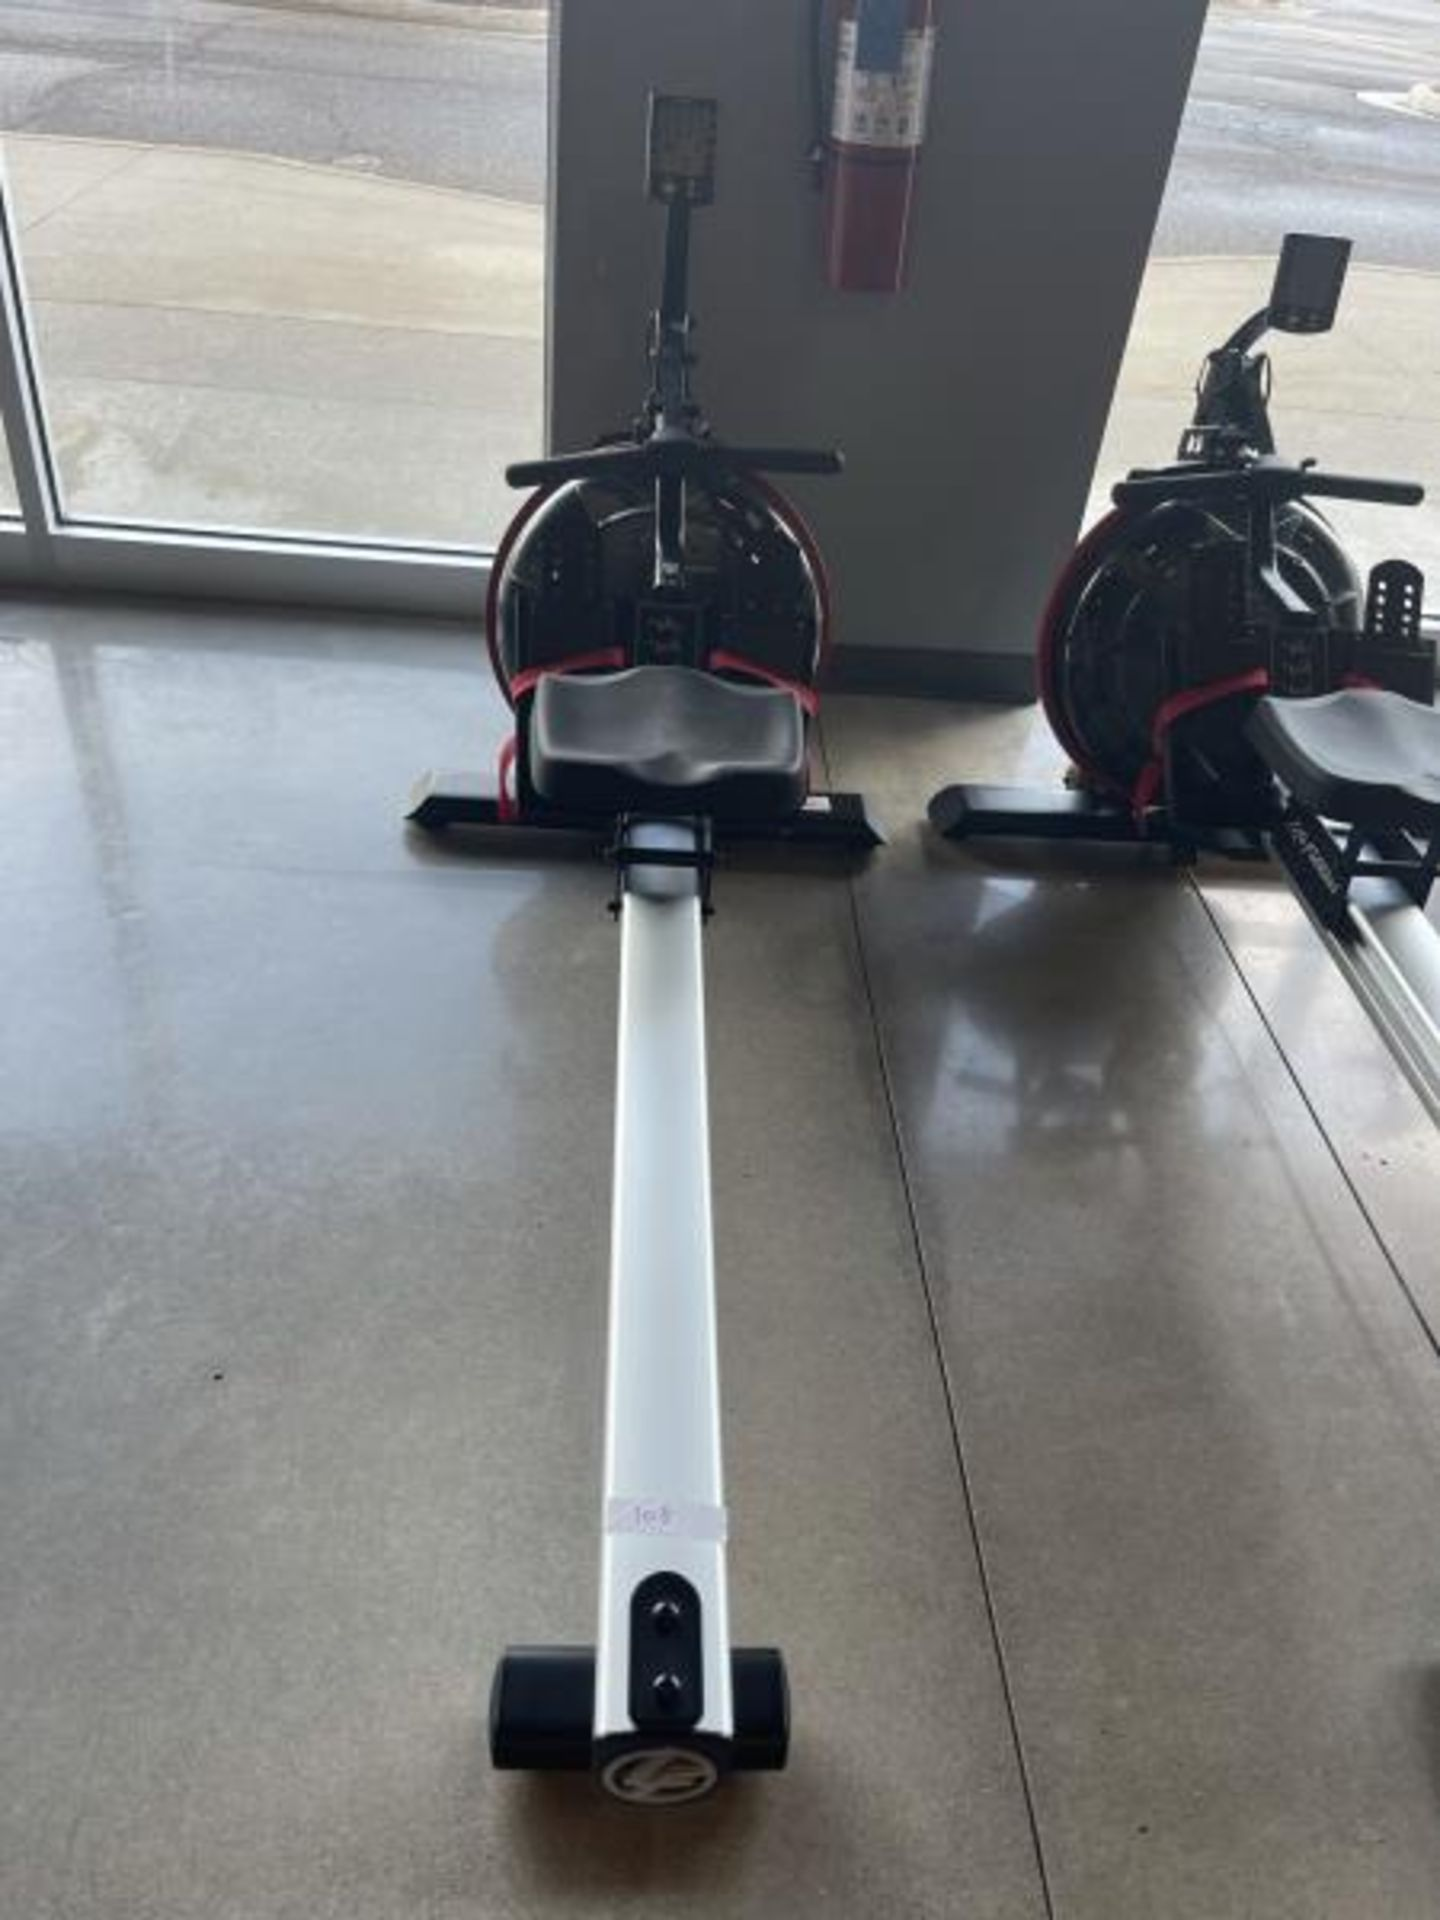 Life Fitness Rowing Machine M: GER-ALLLX-102 - Image 4 of 4